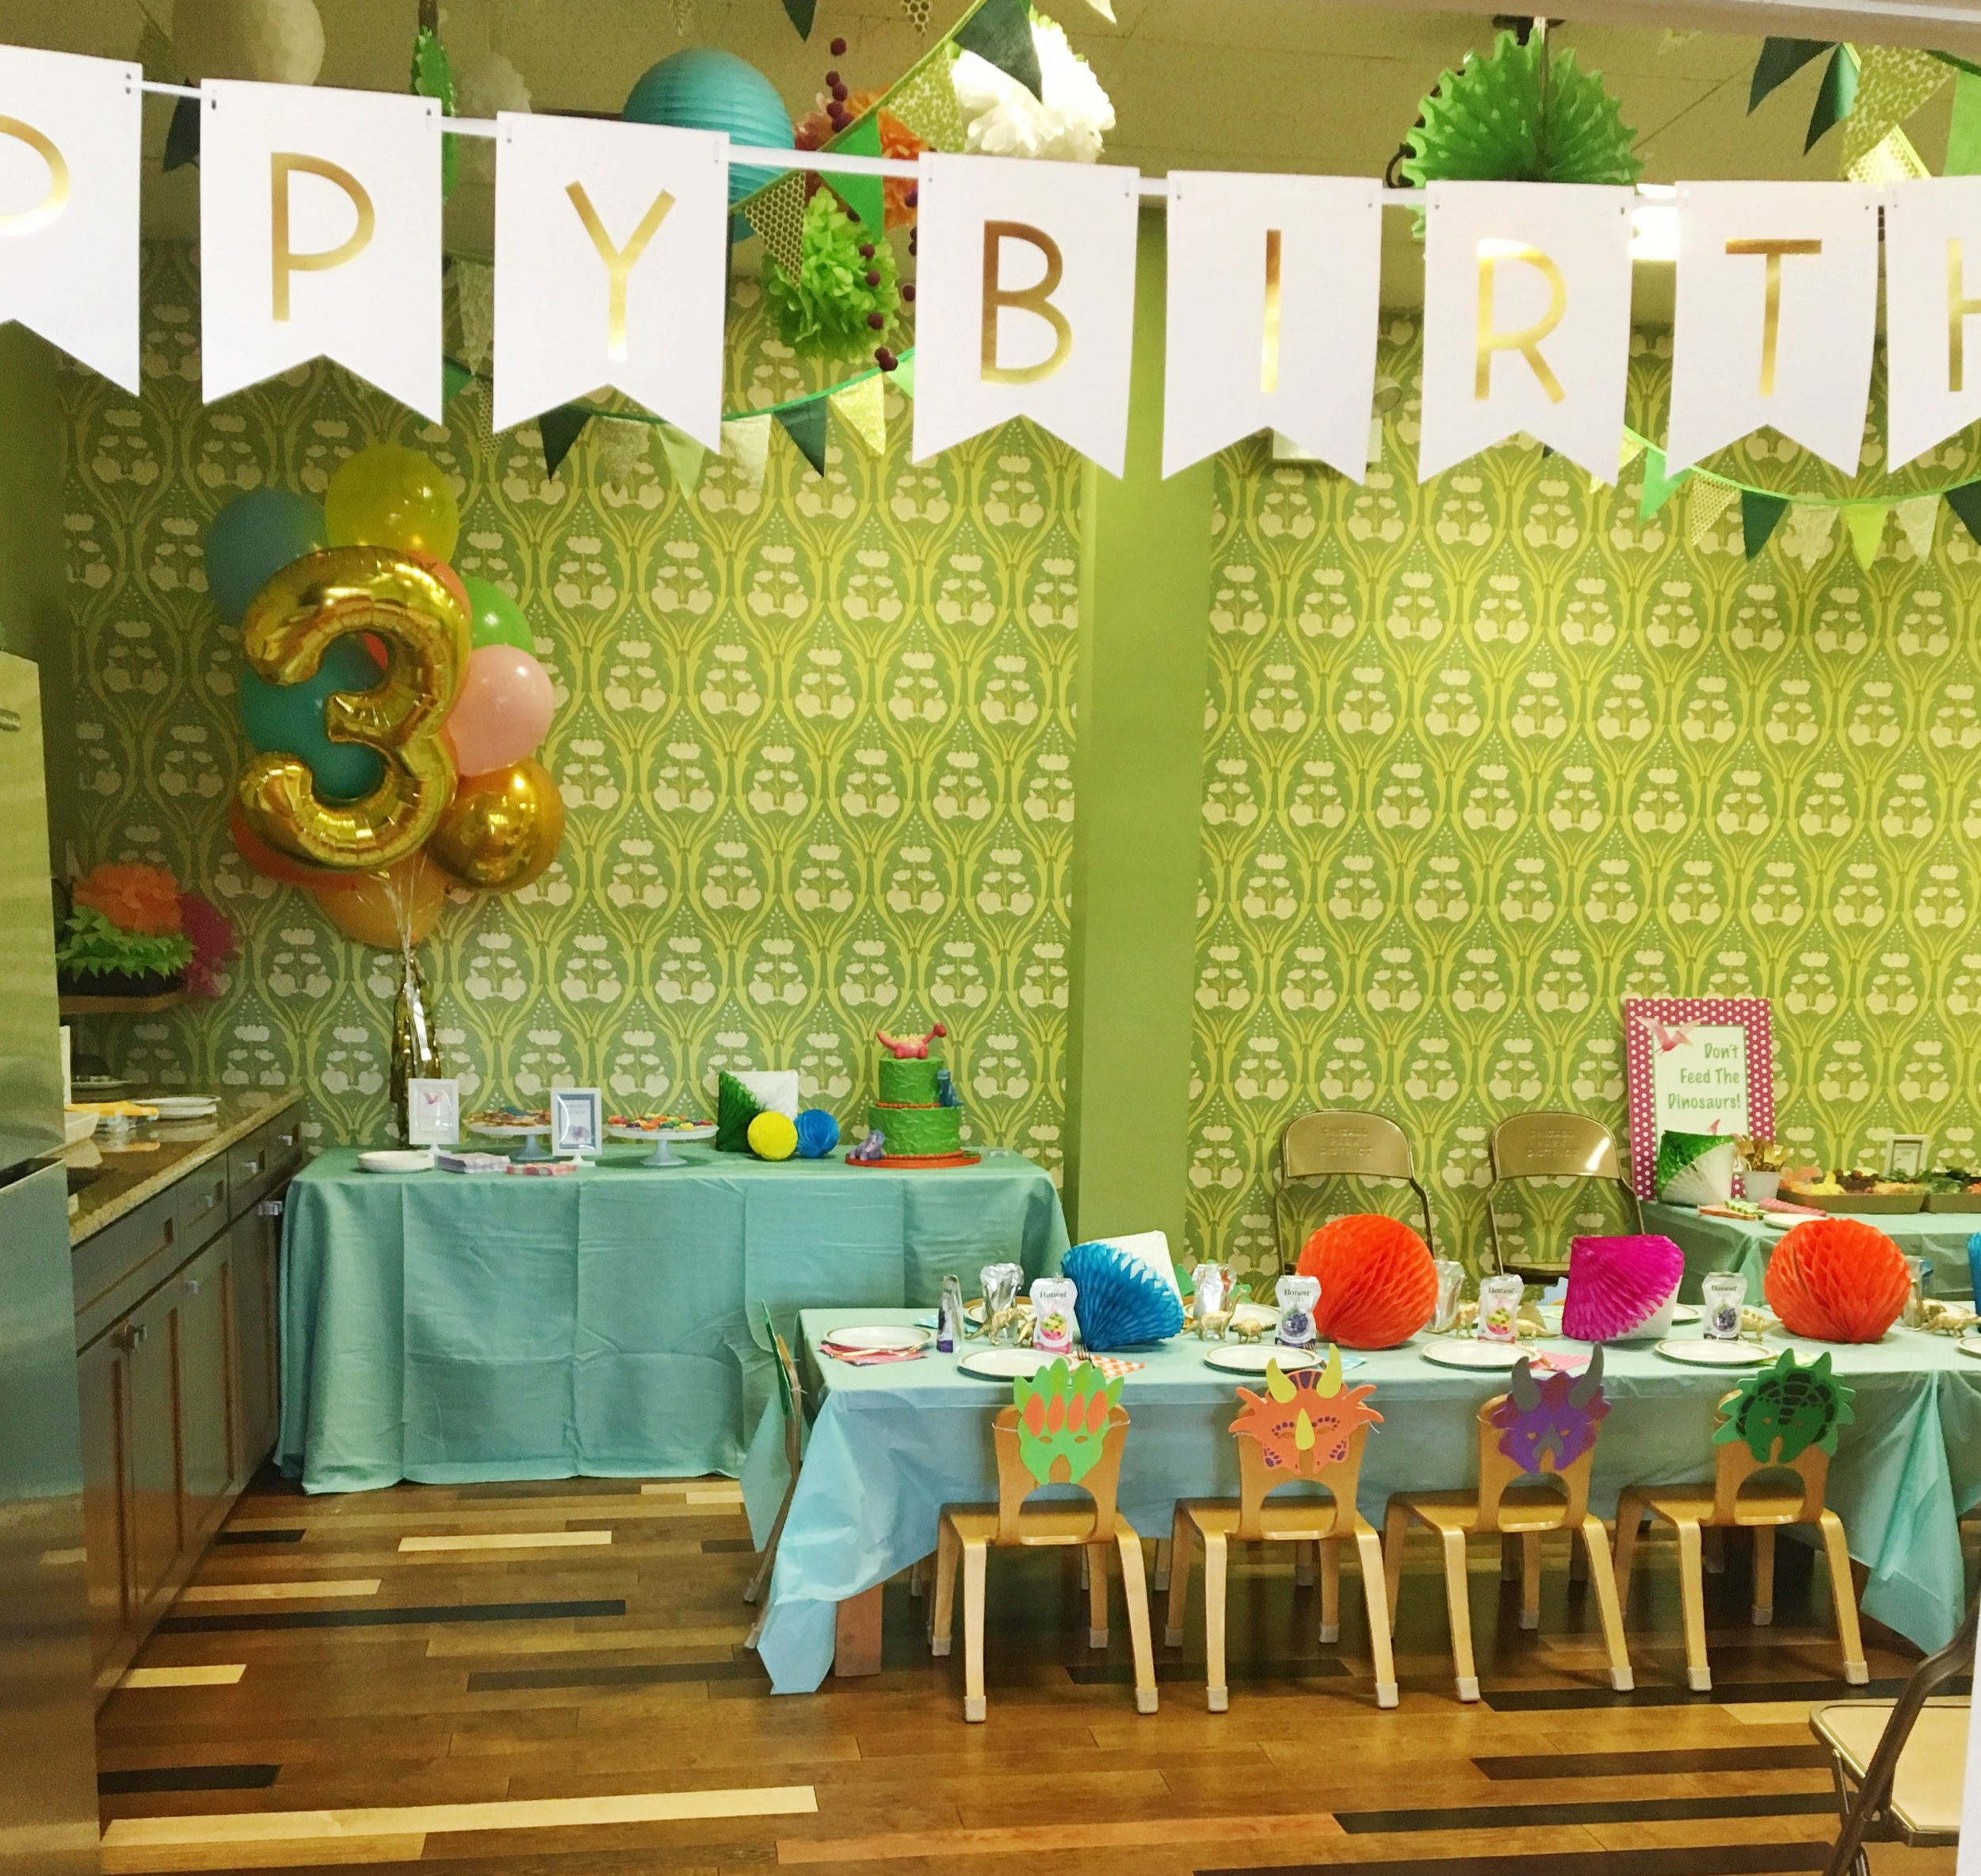 Third Birthday Party Decor  Dinosaur Theme Birthday Party  Planning by Wrap It Up Parties